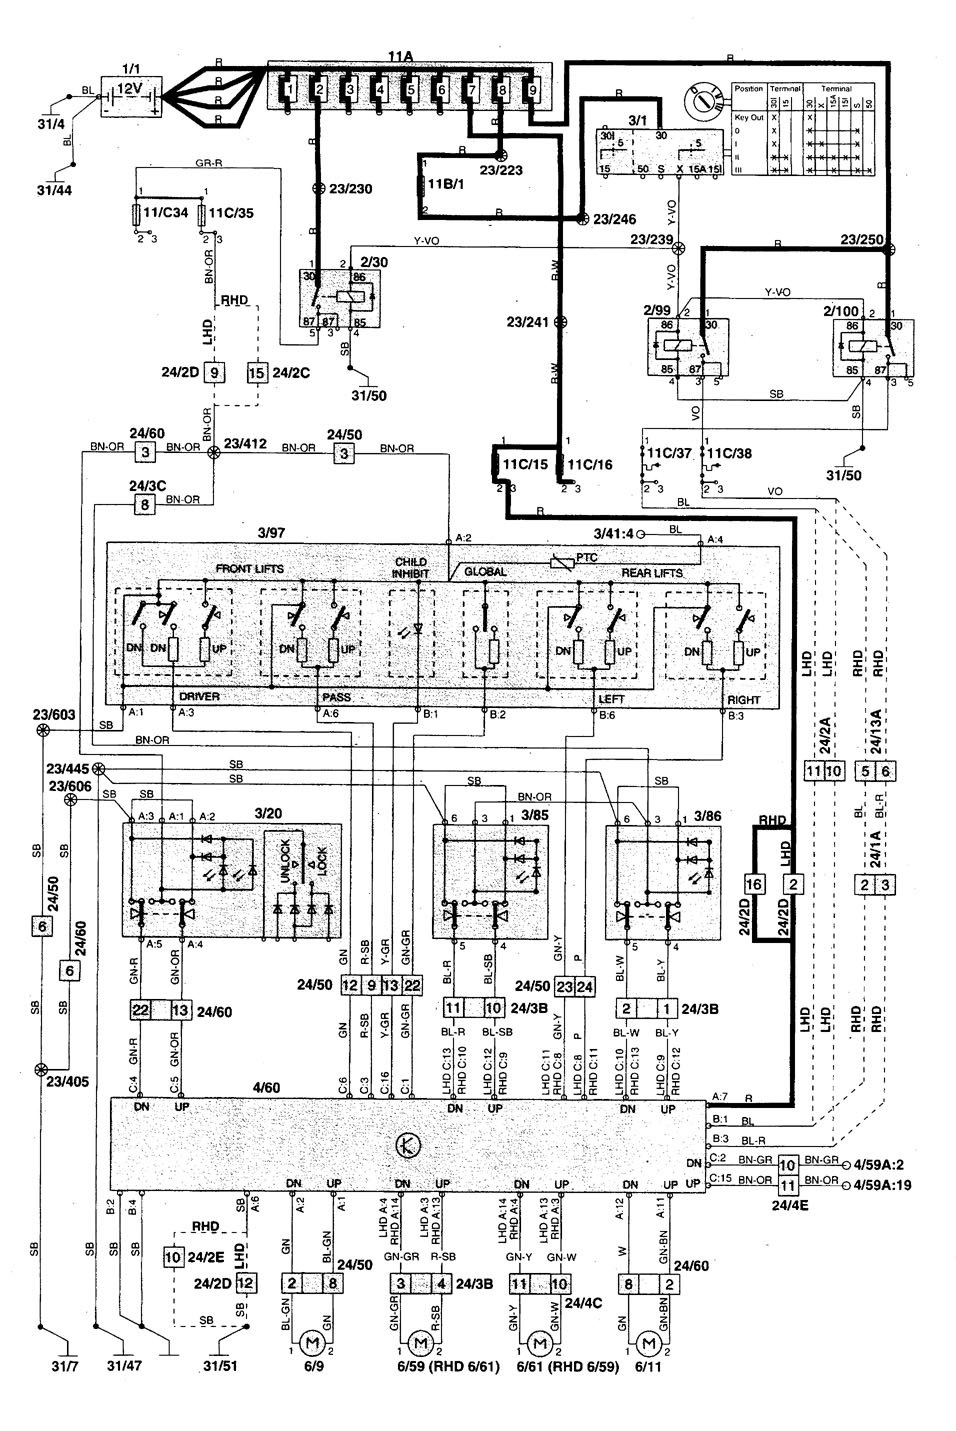 volvo c70 1998 2004 wiring diagrams power windows carknowledge rh  carknowledge info volvo c70 wiring diagram pdf volvo v70 wiring diagram 1998